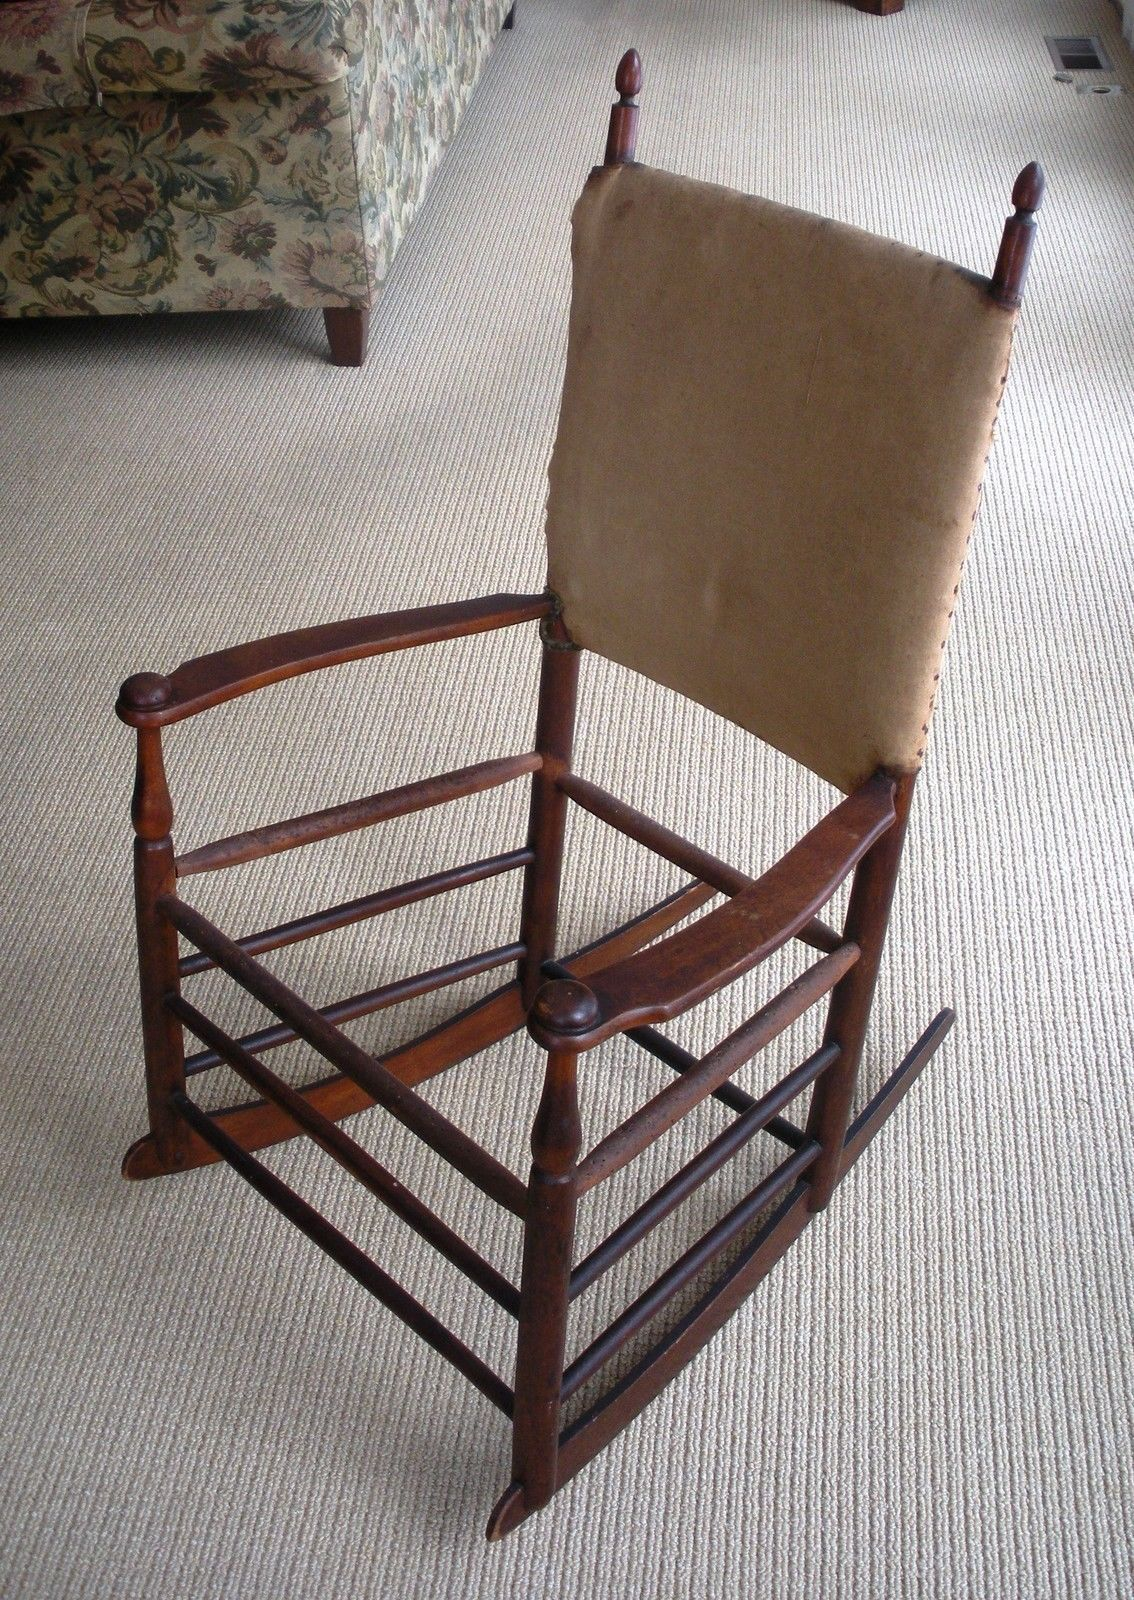 Shaker Rocking Chair w Arms MT Lebanon NY Antique 1880 ...